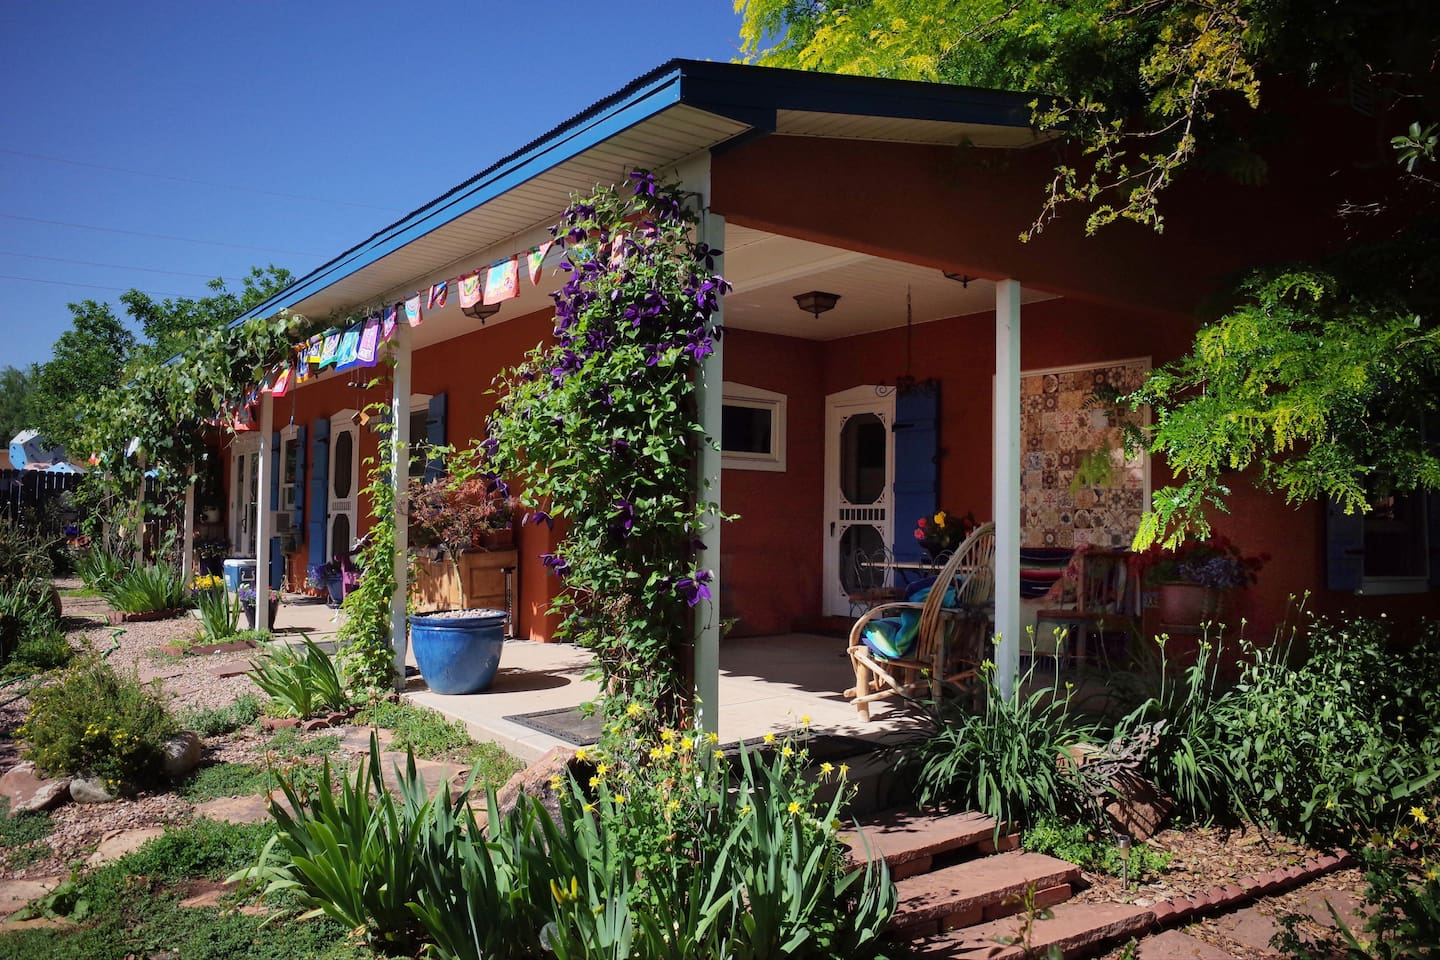 The La Veta Studio Guesthouse is part of a territorial style New Mexico adobe.